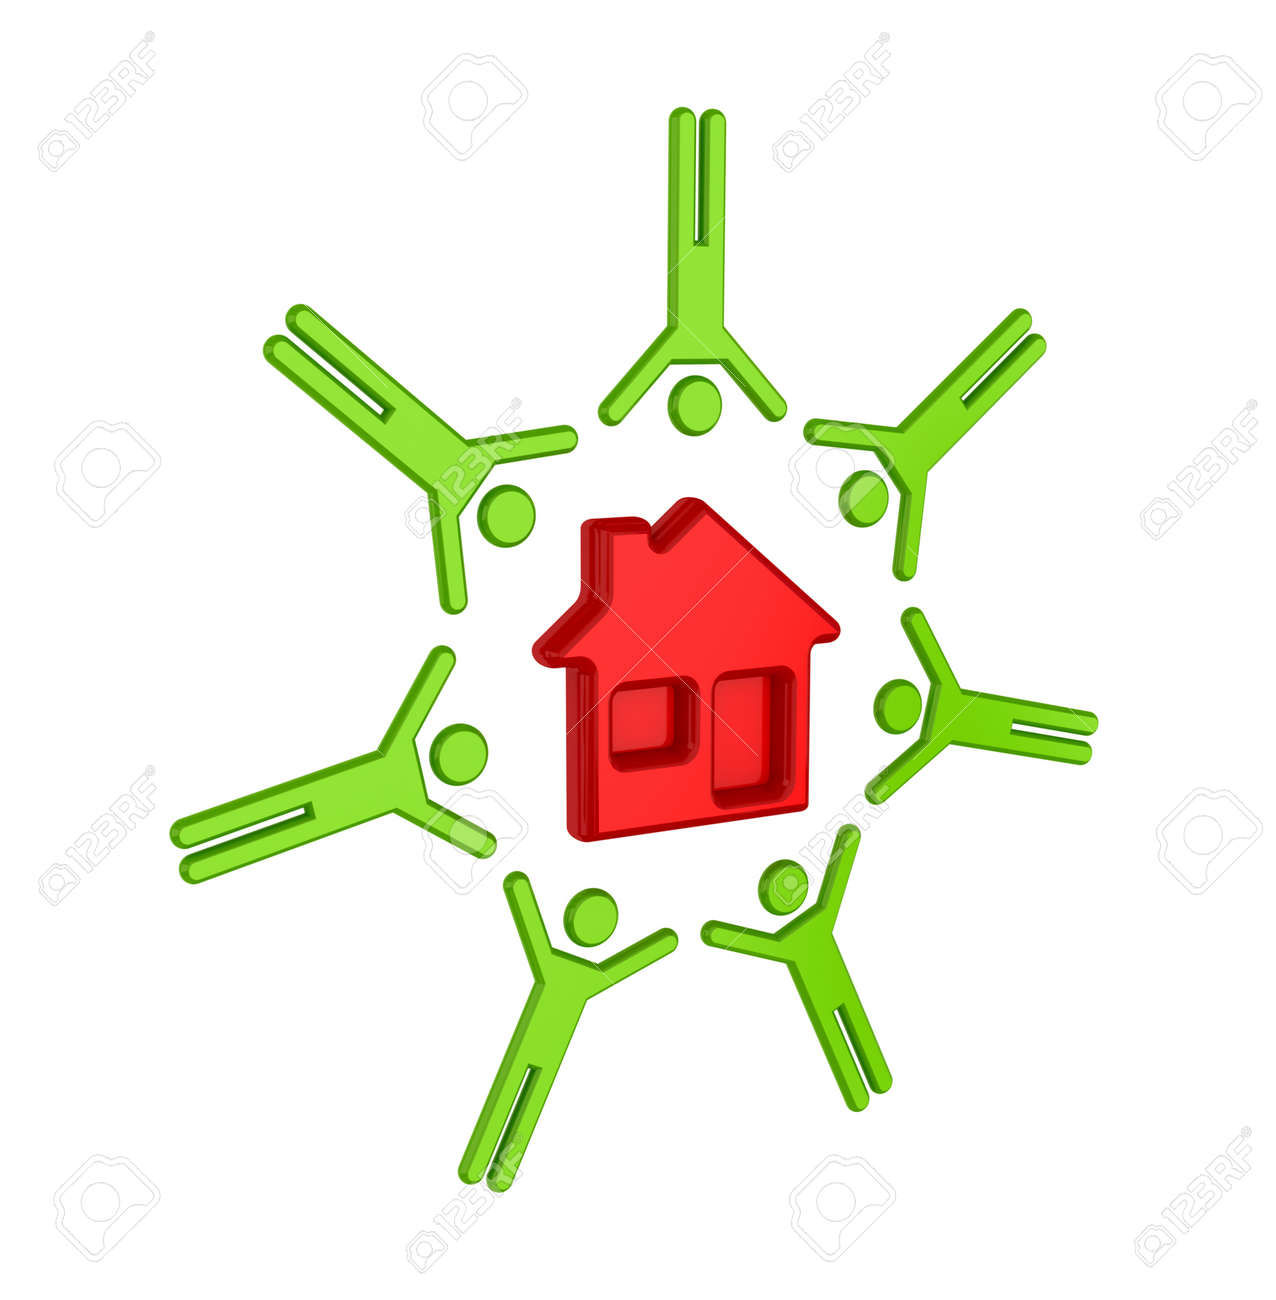 Colorful 3d small people around house icon. Isolated on white background. Stock Photo - 12171671